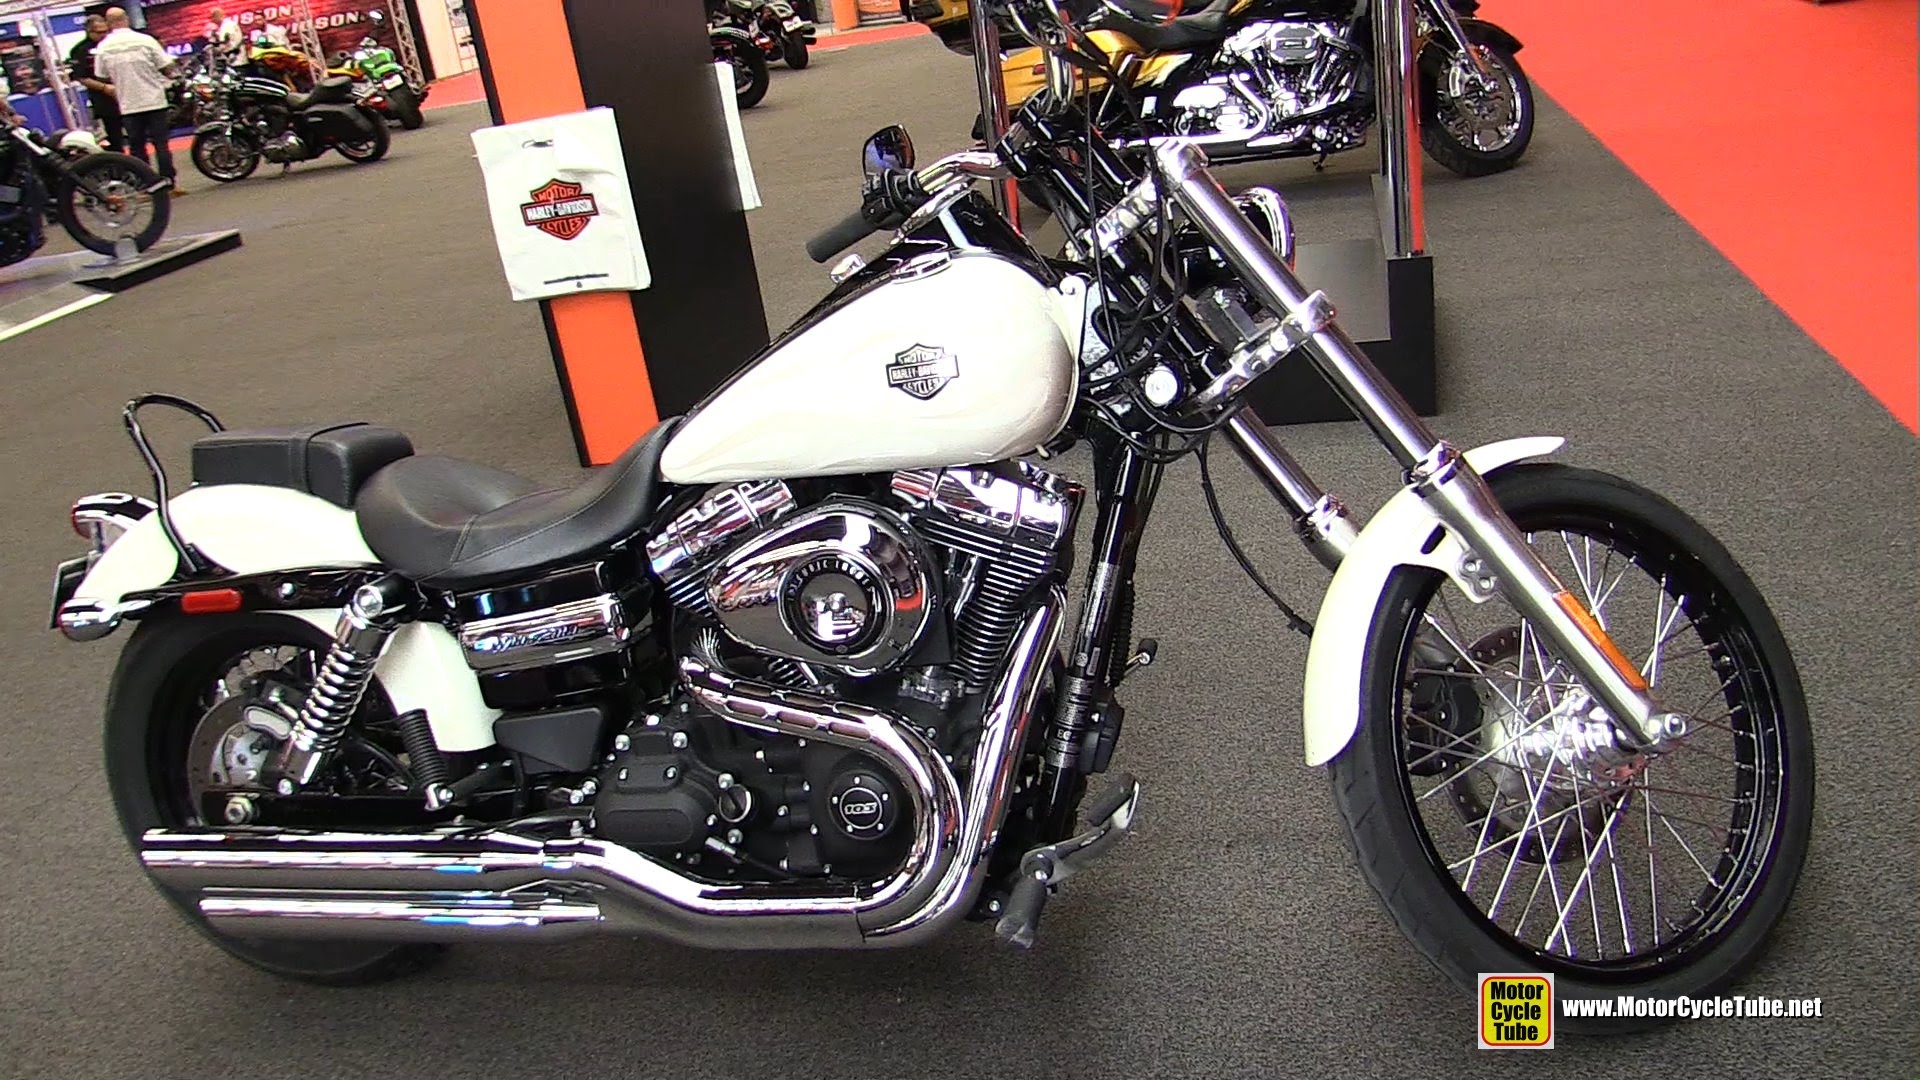 2014 Harley-Davidson FXDWG Dyna Wide Glide: pics, specs and ...